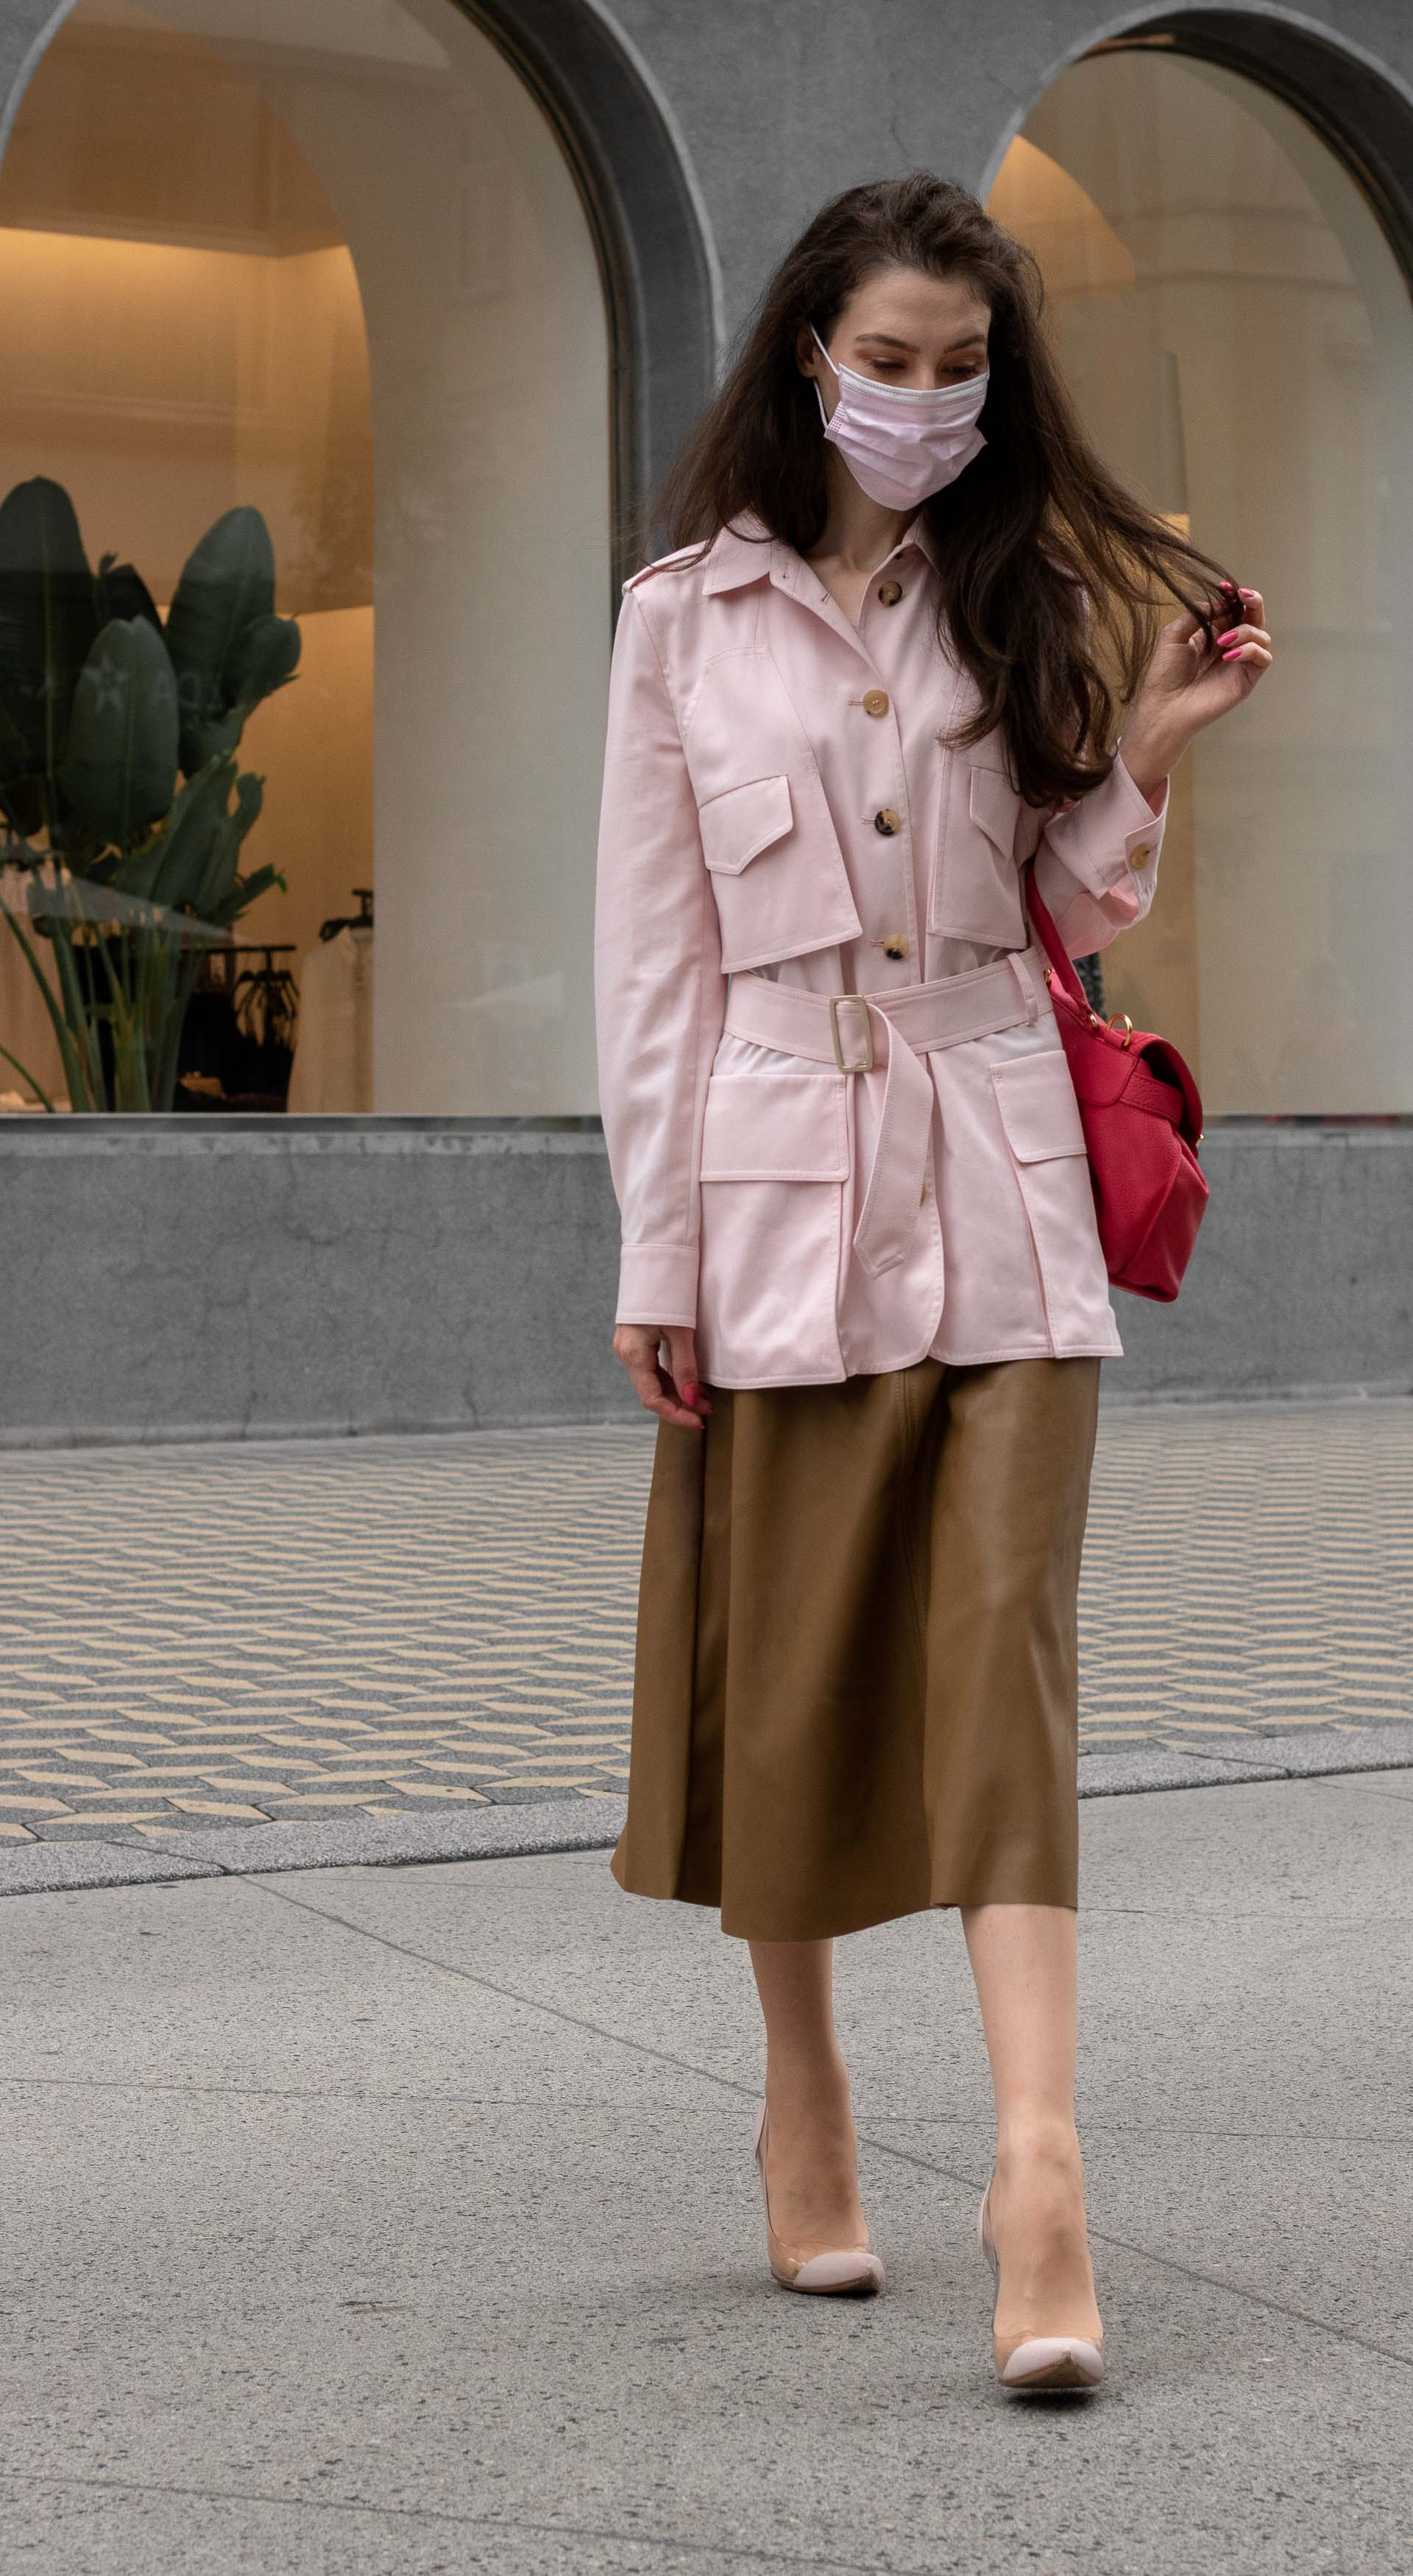 Fashion blogger Veronika Lipar of Brunette from Wall Street wearing Max Mara safari jacket H&M leather midi skirt Gianvito Rossi pumps face mask for work in fall